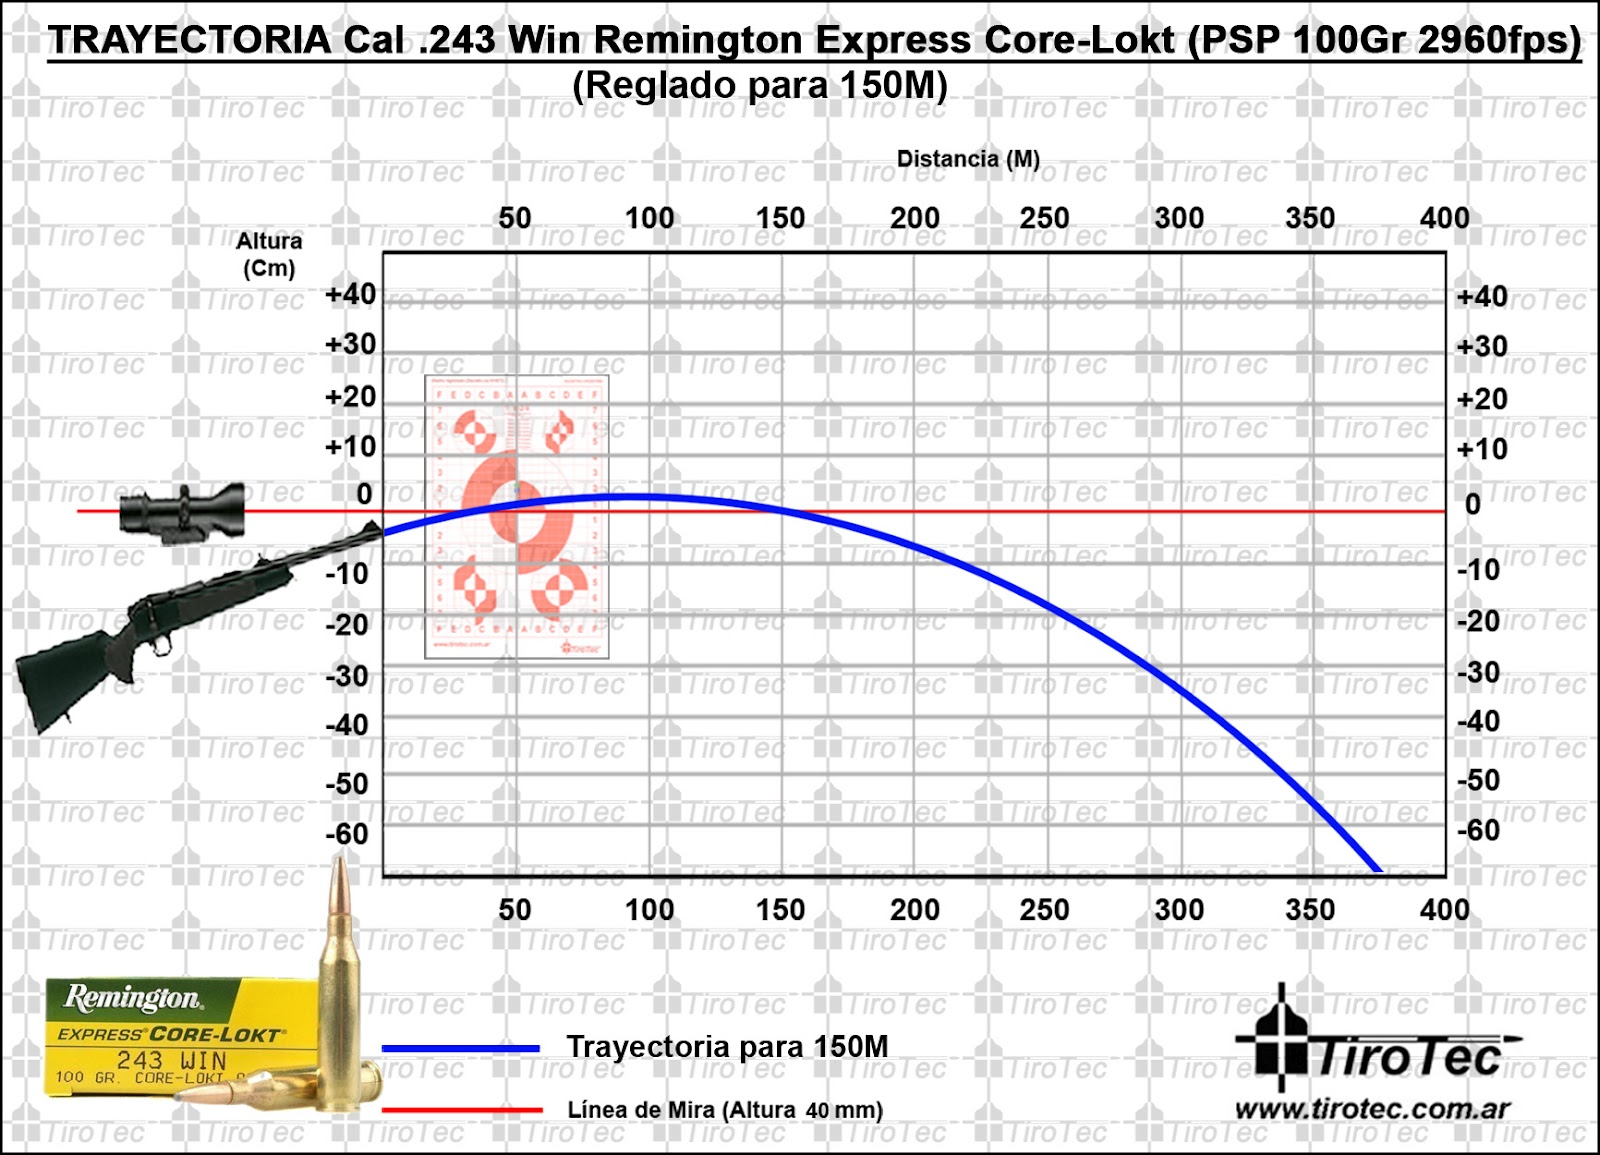 Tirotec calibre 243 win remington express 100 grain core lokt psp 2960fps para 150m - Table balistique winchester ...